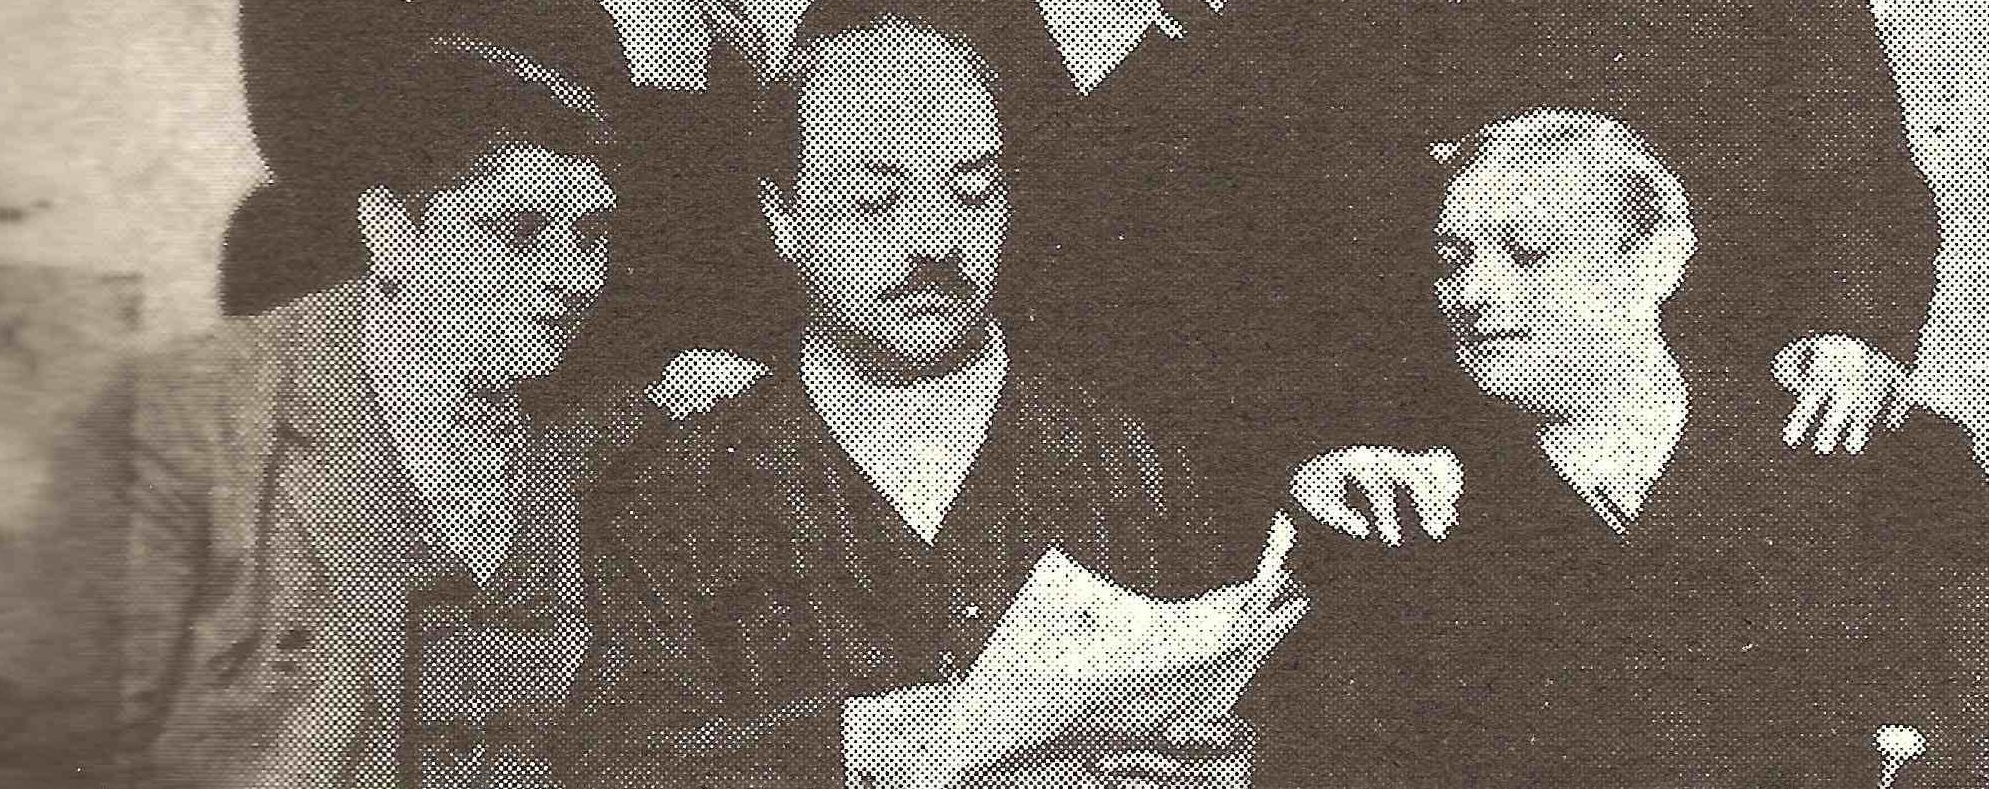 Sepia toned photo showing three men around a newspaper in the late 1800s. The two men without mustaches are castrati: Alessandro Moreschi on the left and Giovanni Cesari on the right